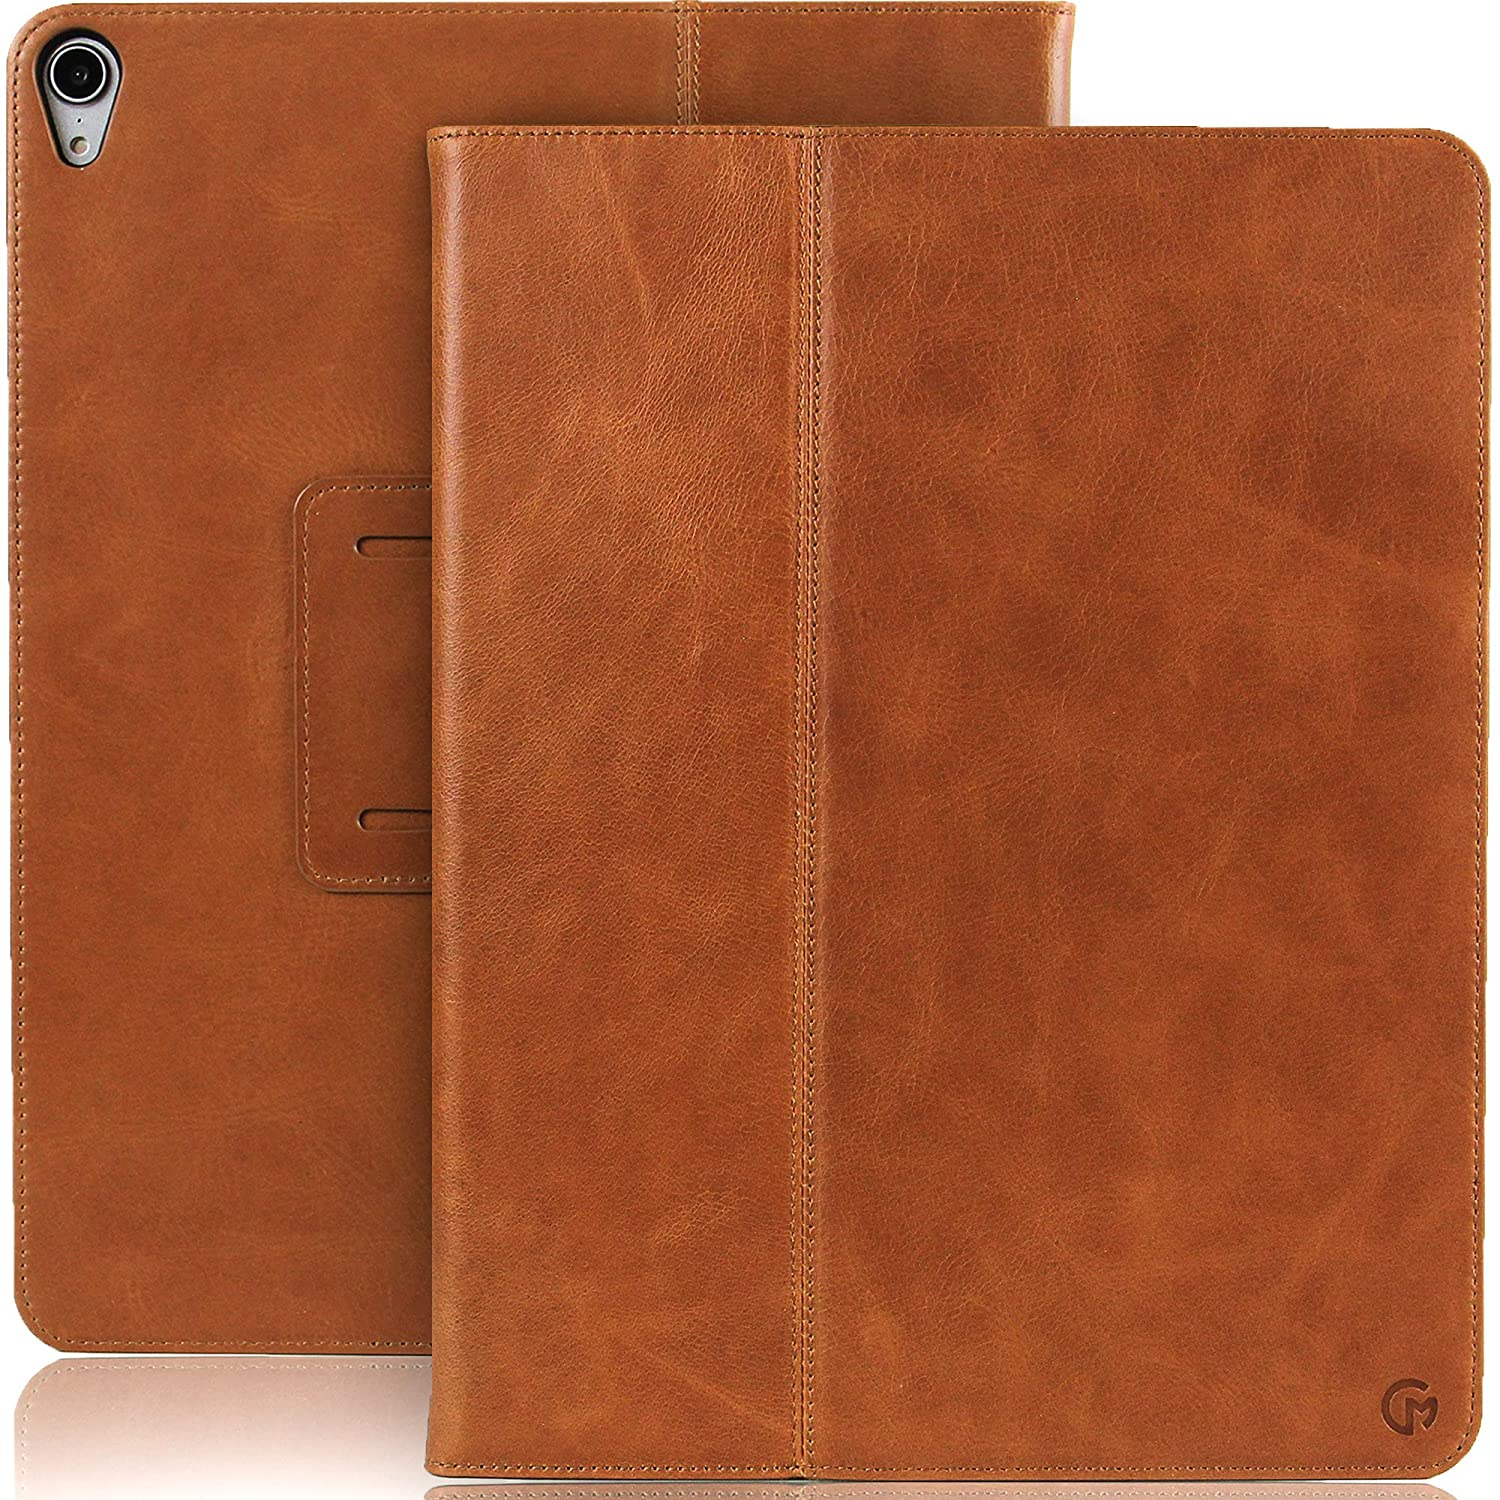 CASEMADE iPad Pro 12.9 inch Real Leather Case (3rd Generation 2018) - Premium Luxury Italian Slim Cover/Smart Folio with Dual Stand and Auto Sleep/Wake (Tan)